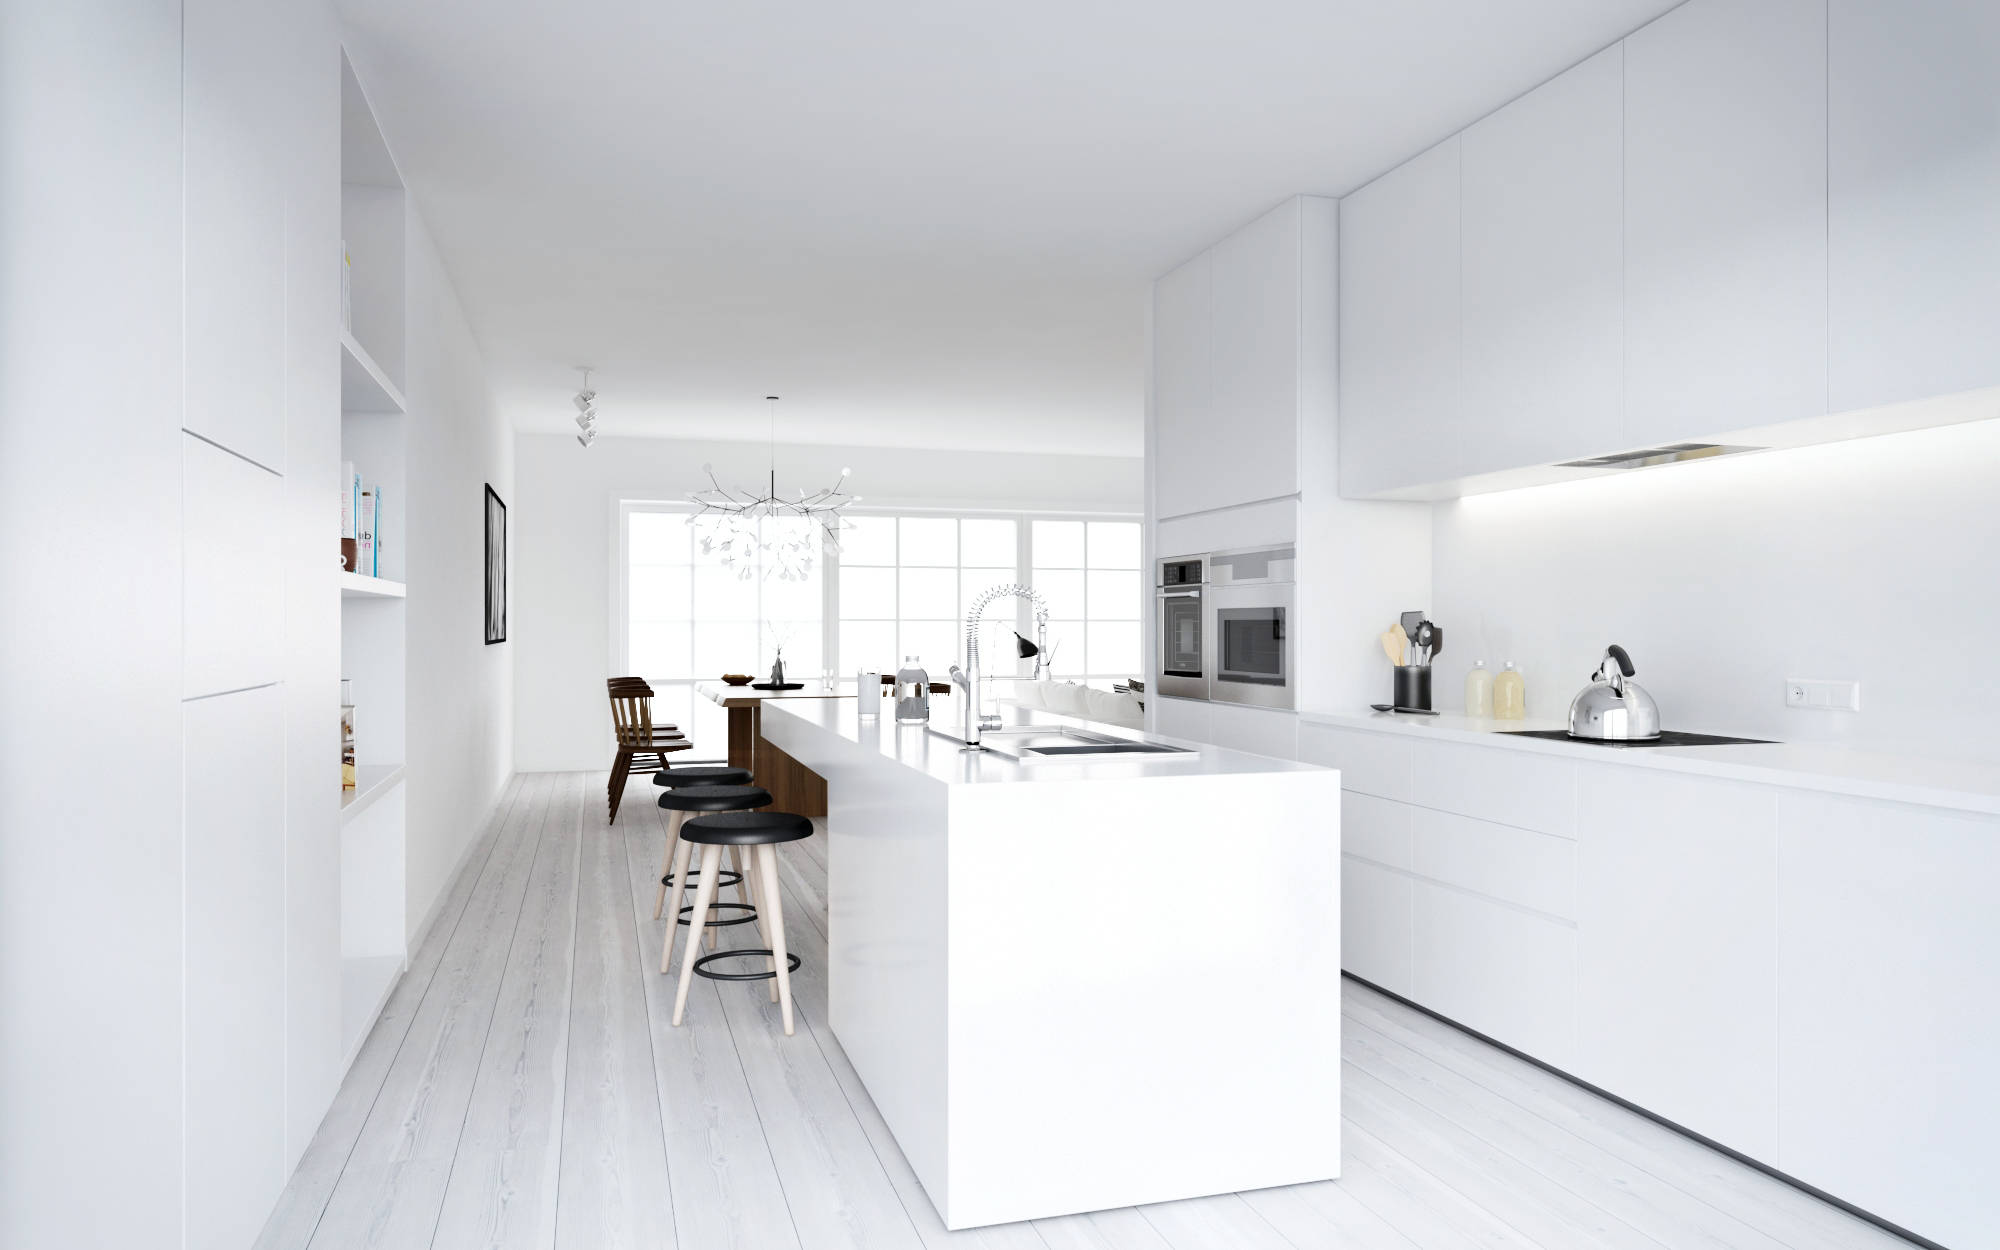 Atdesign nordic style minimalist kitchen in white Minimalist design